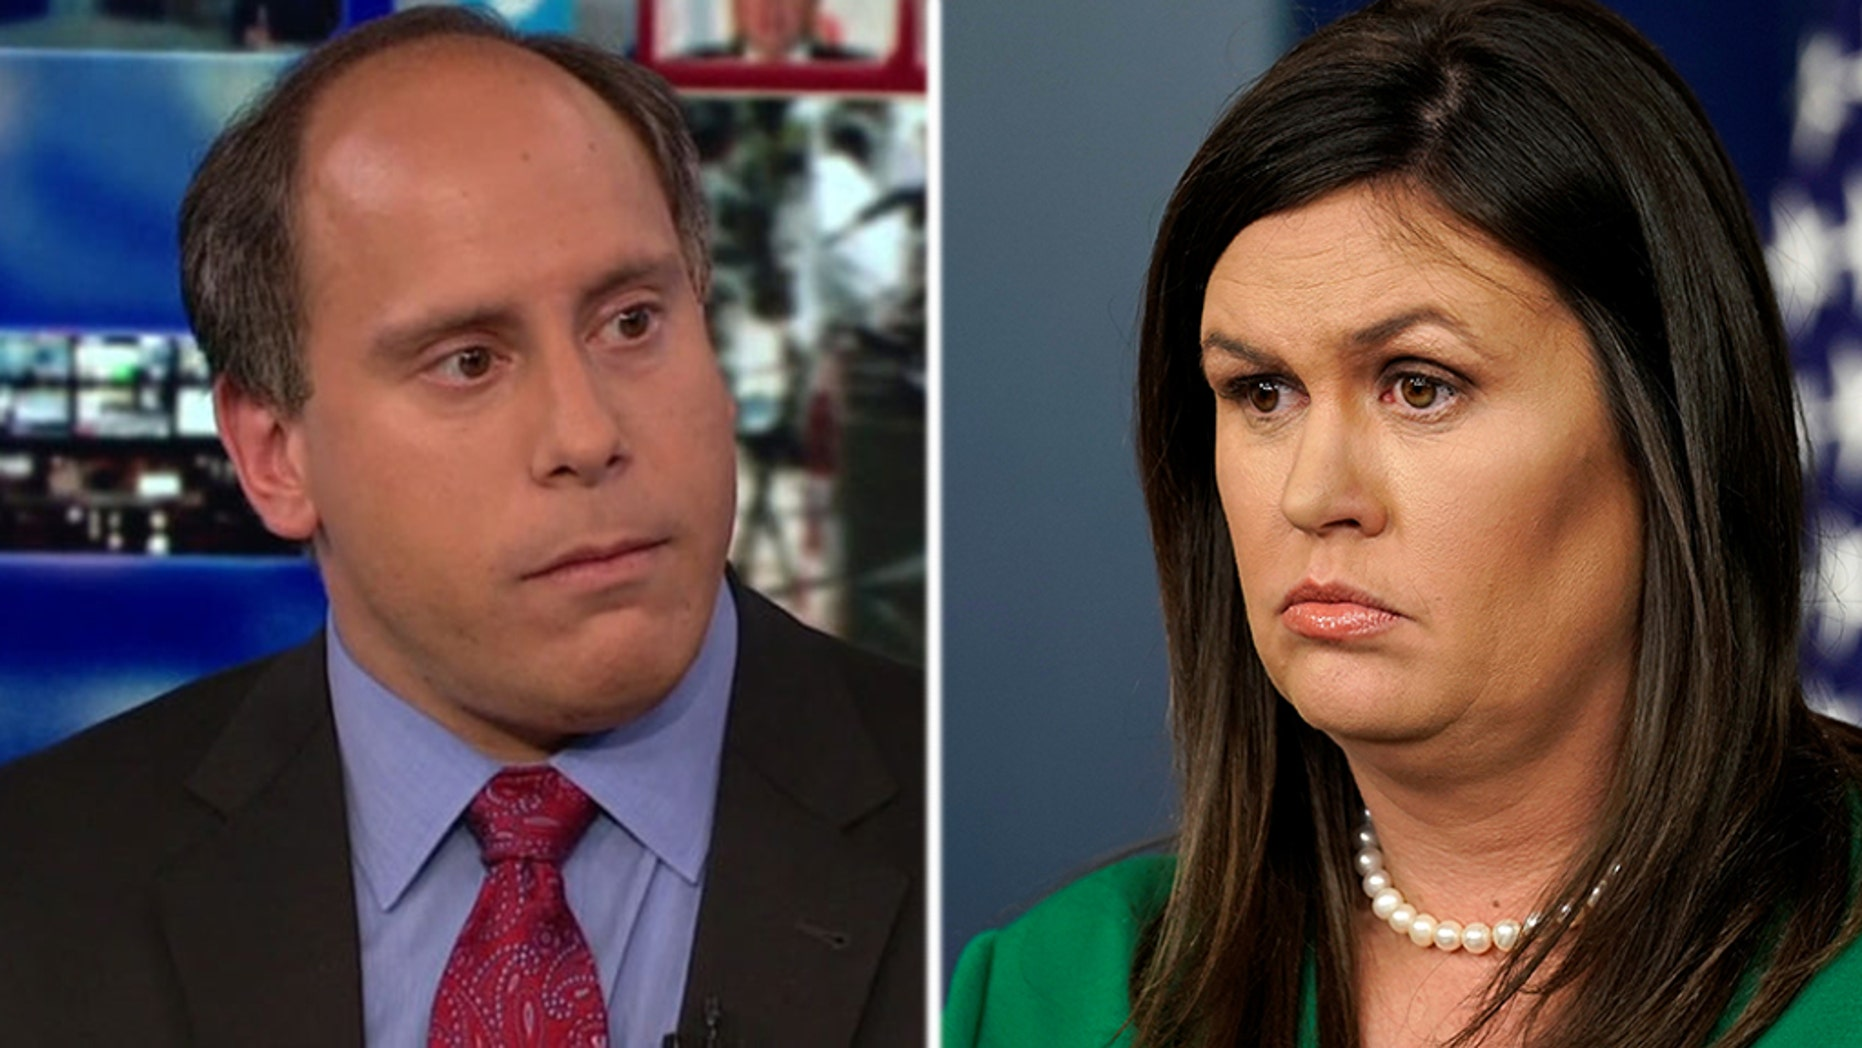 Reporter Andrew Feinberg shouted at White House Press Secretary Sarah Sanders following a press briefing on Tuesday.